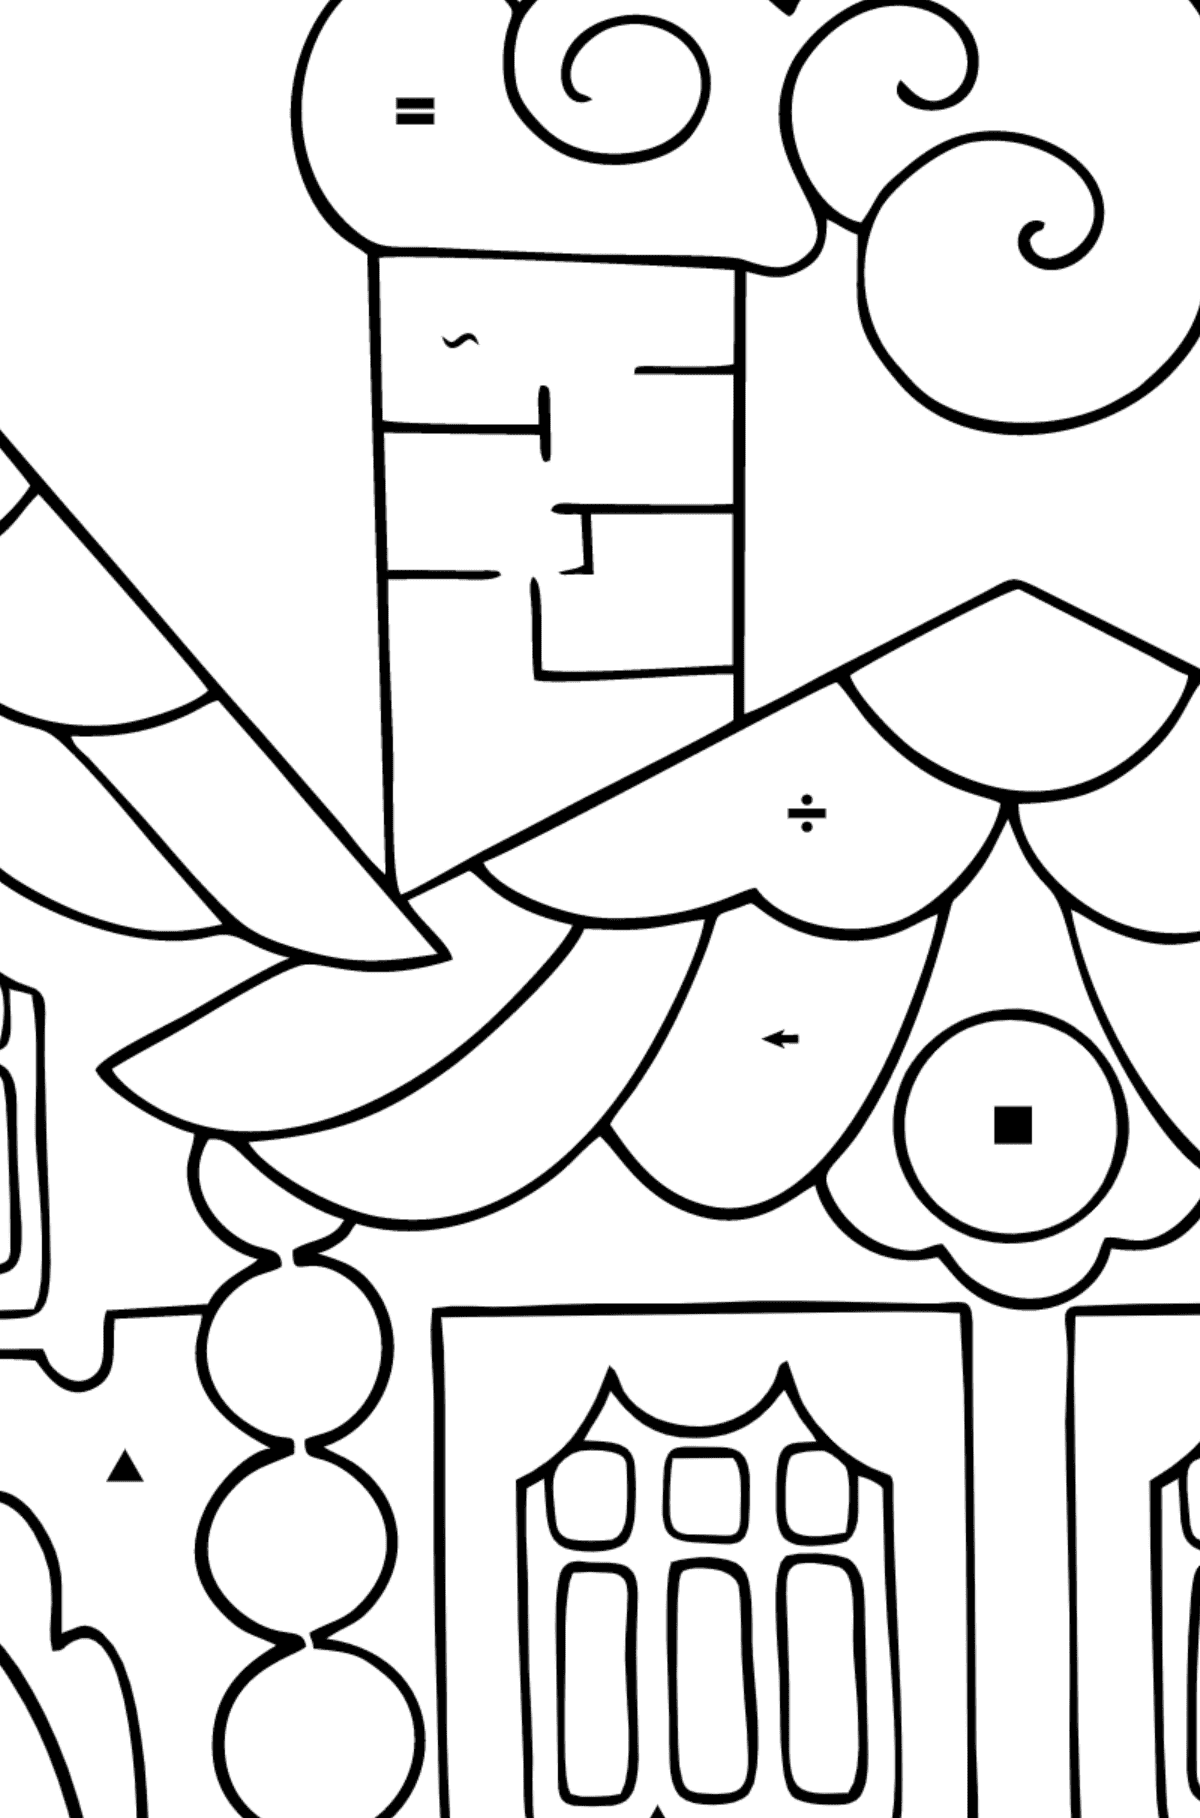 Simple Coloring Page - A House in the Forest - Coloring by Symbols for Children